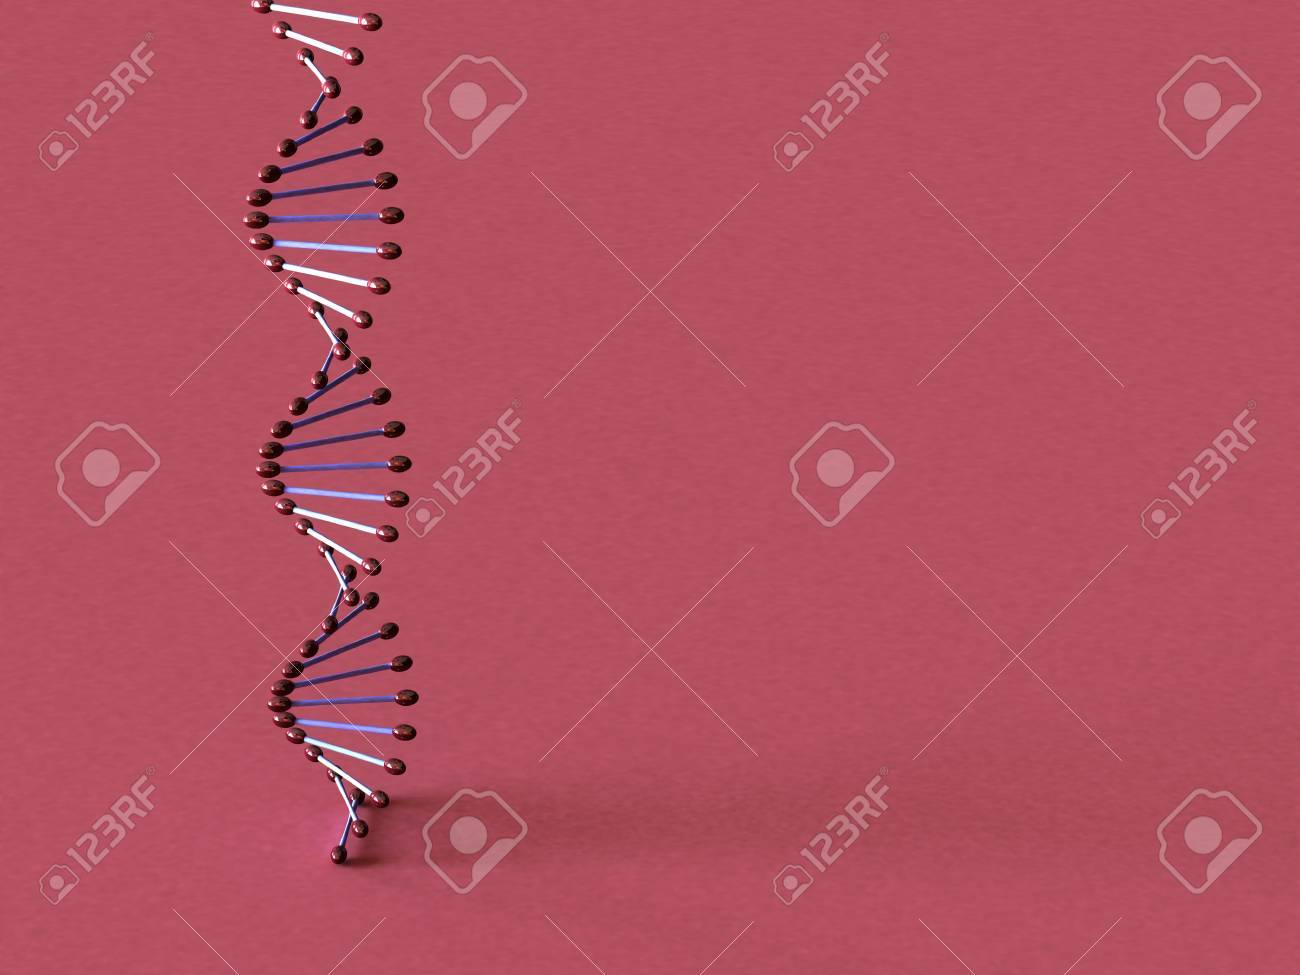 3d dna model Stock Photo - 320111